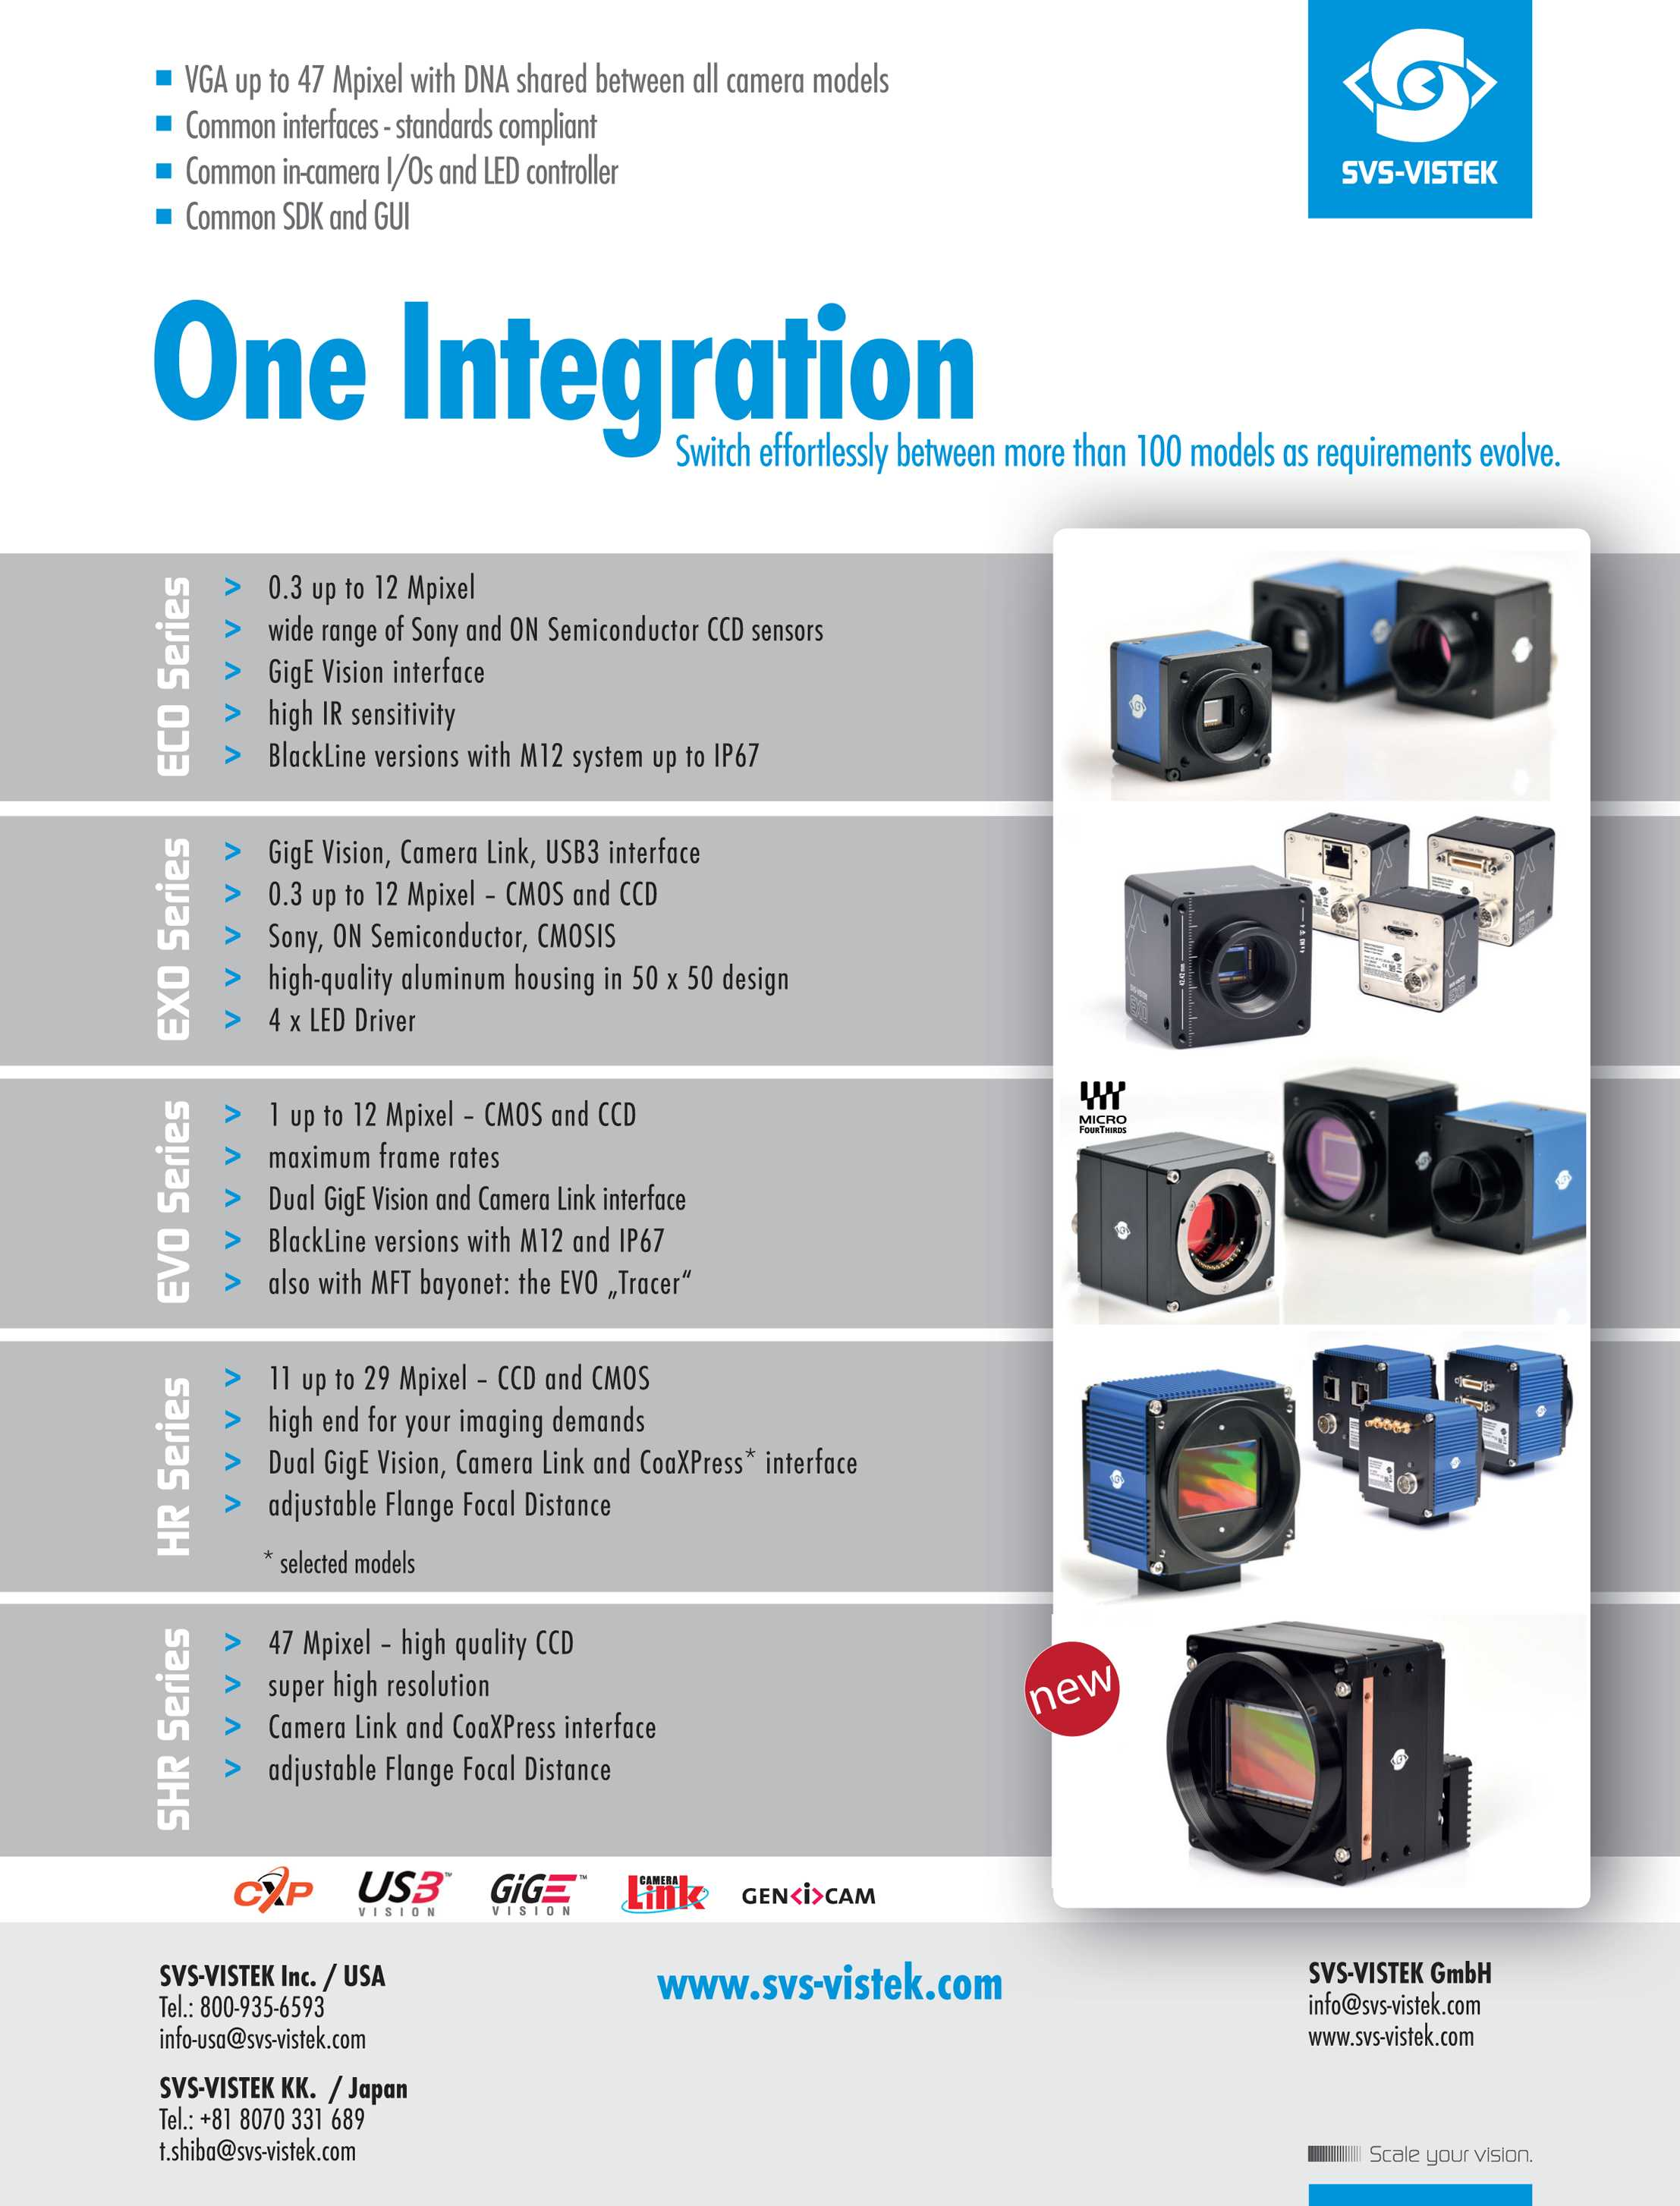 Vision Systems - November 2015 - page 47